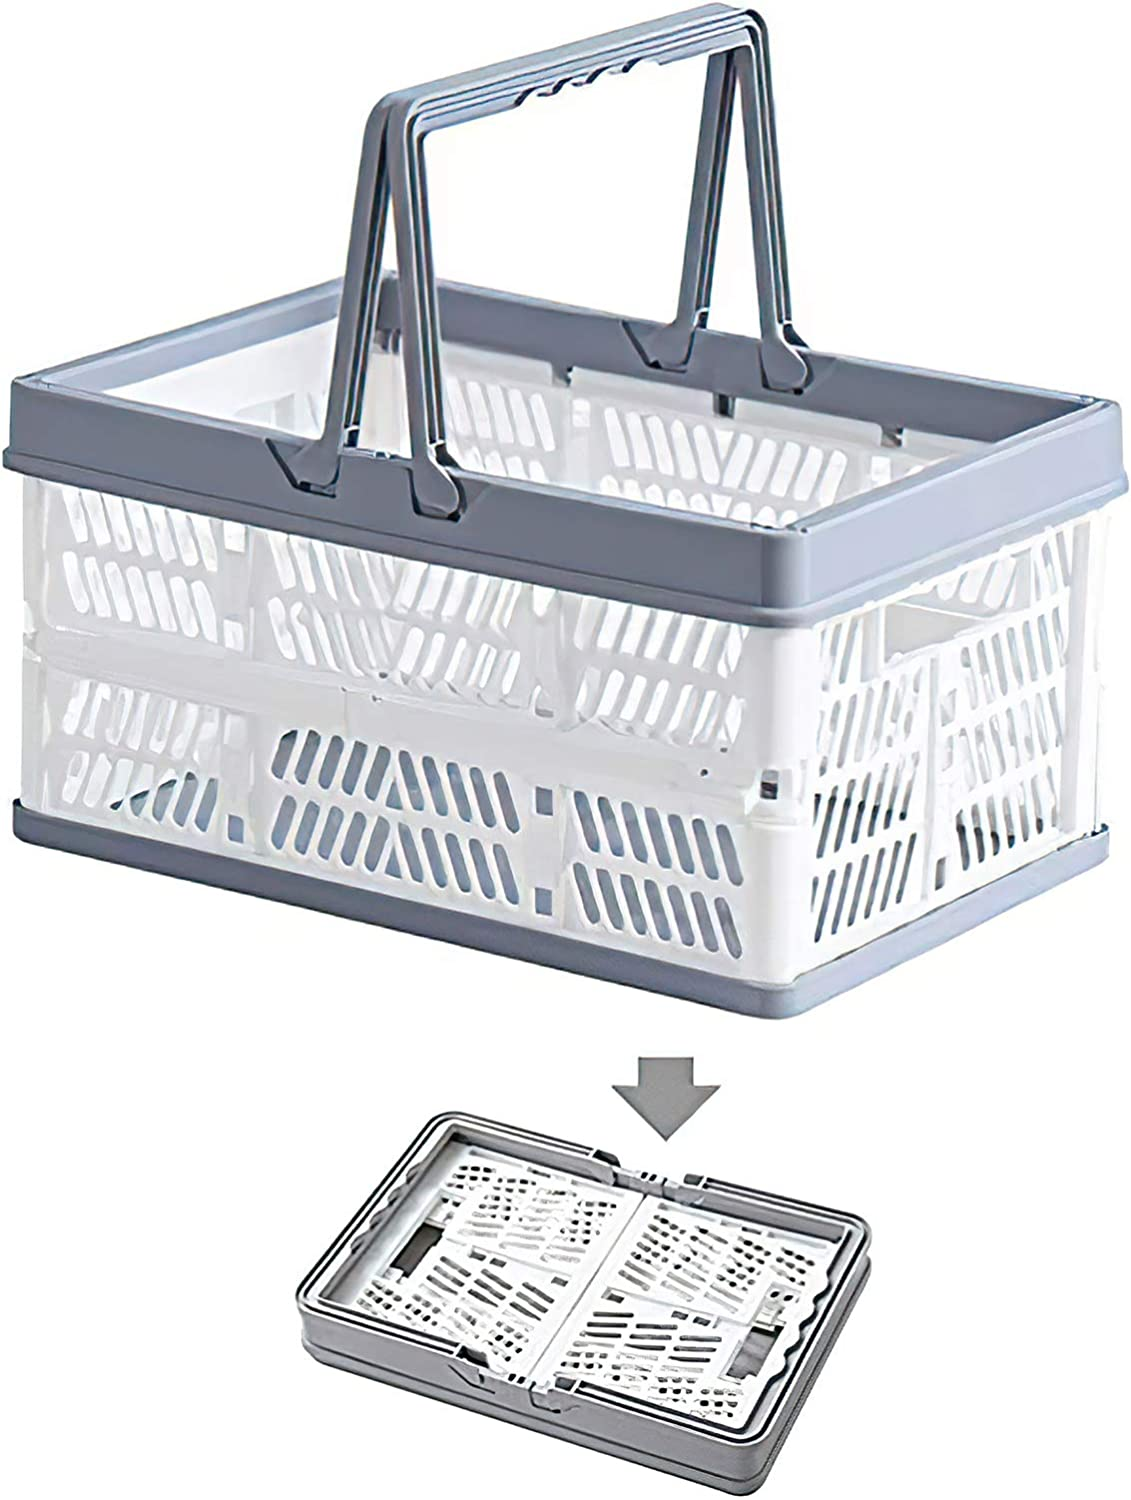 Plastic Collapsible Storage Shopping Basket crates Stackable Crate bin Folding Storage Bins Baskets with Handles, Utility Container Organizer Bins for Kitchen Bathroom Grocery Car Trunk Books